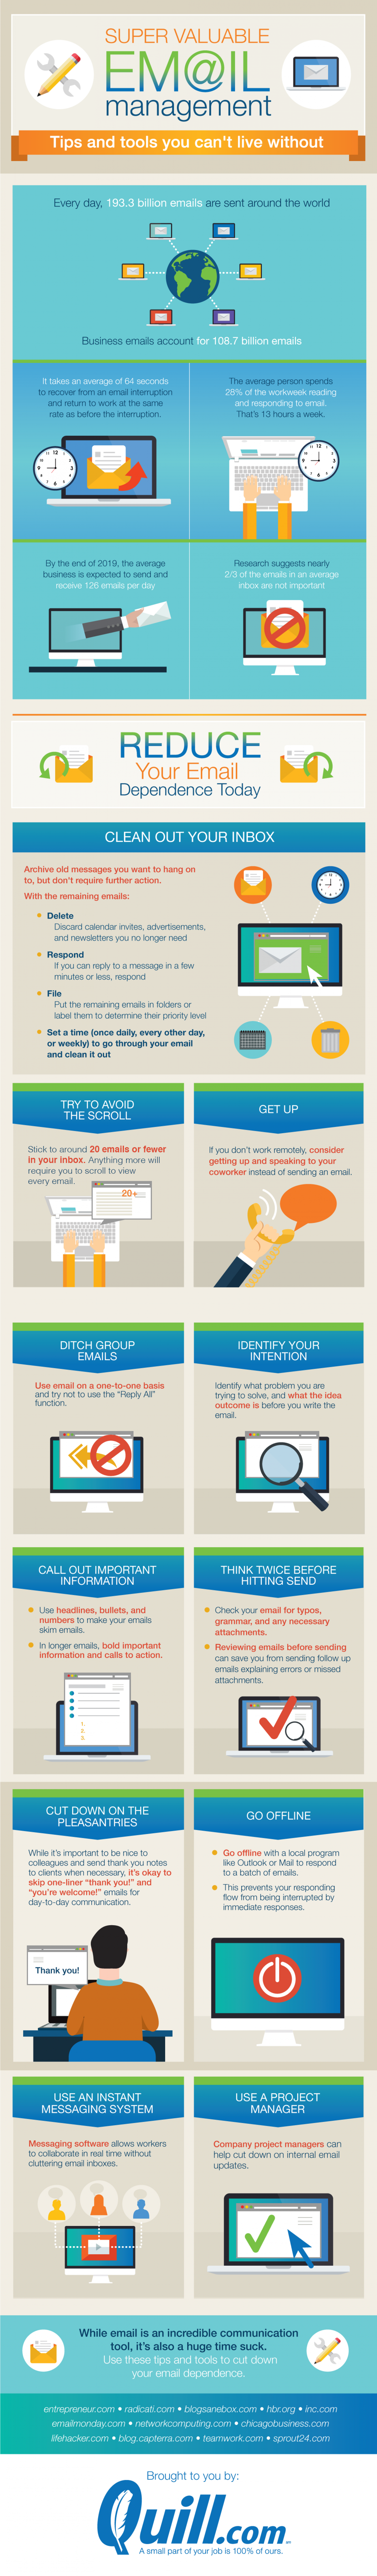 Super Valuable Email Management Tips and Tools You Can't Live Without [Infographic]